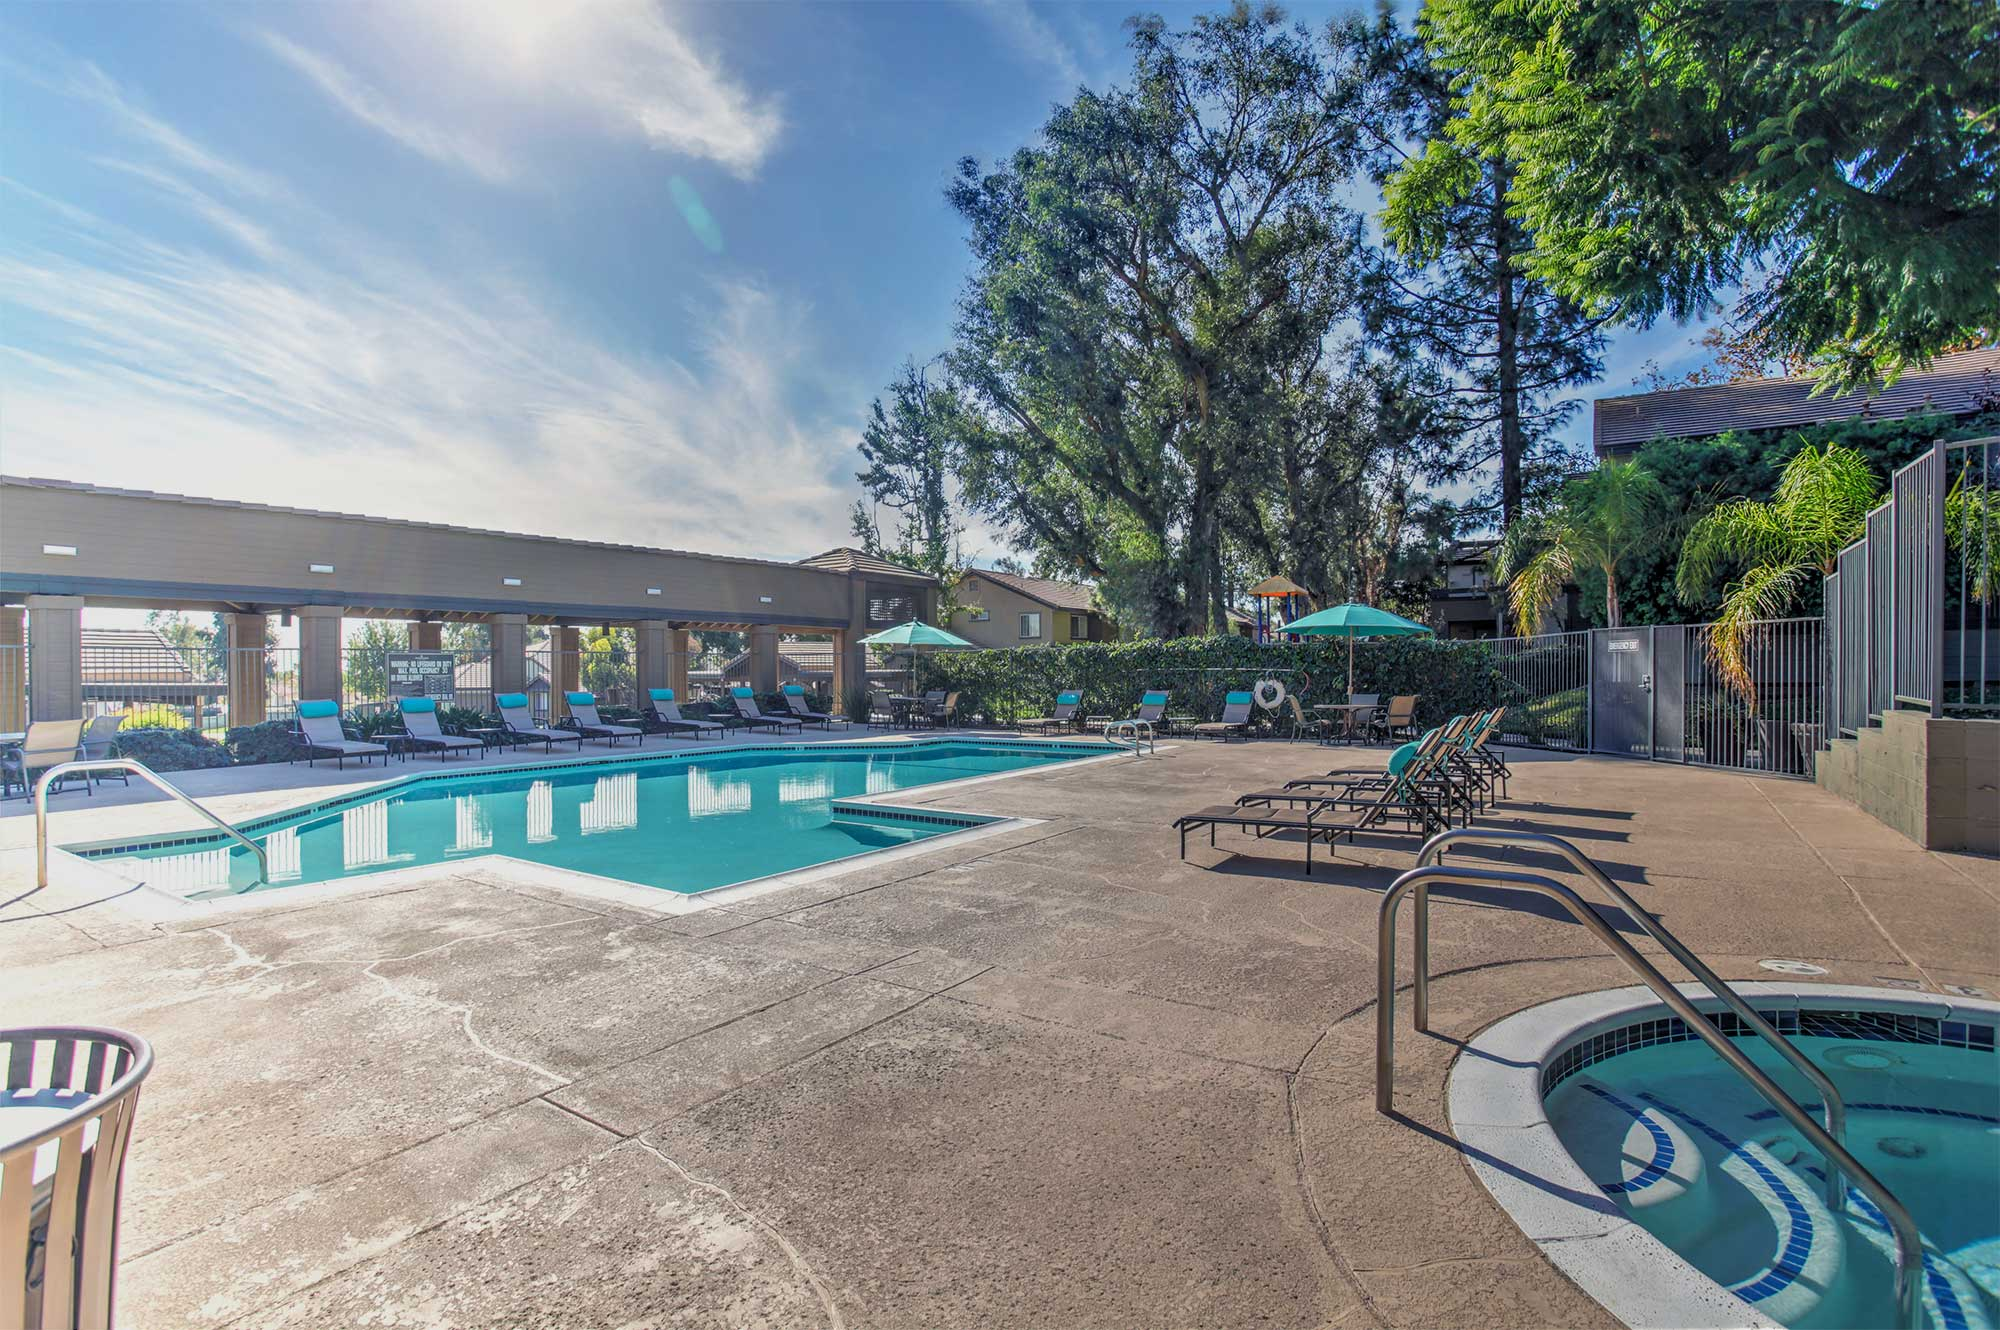 Waterstone Alta Loma Apartments Community Pool Area